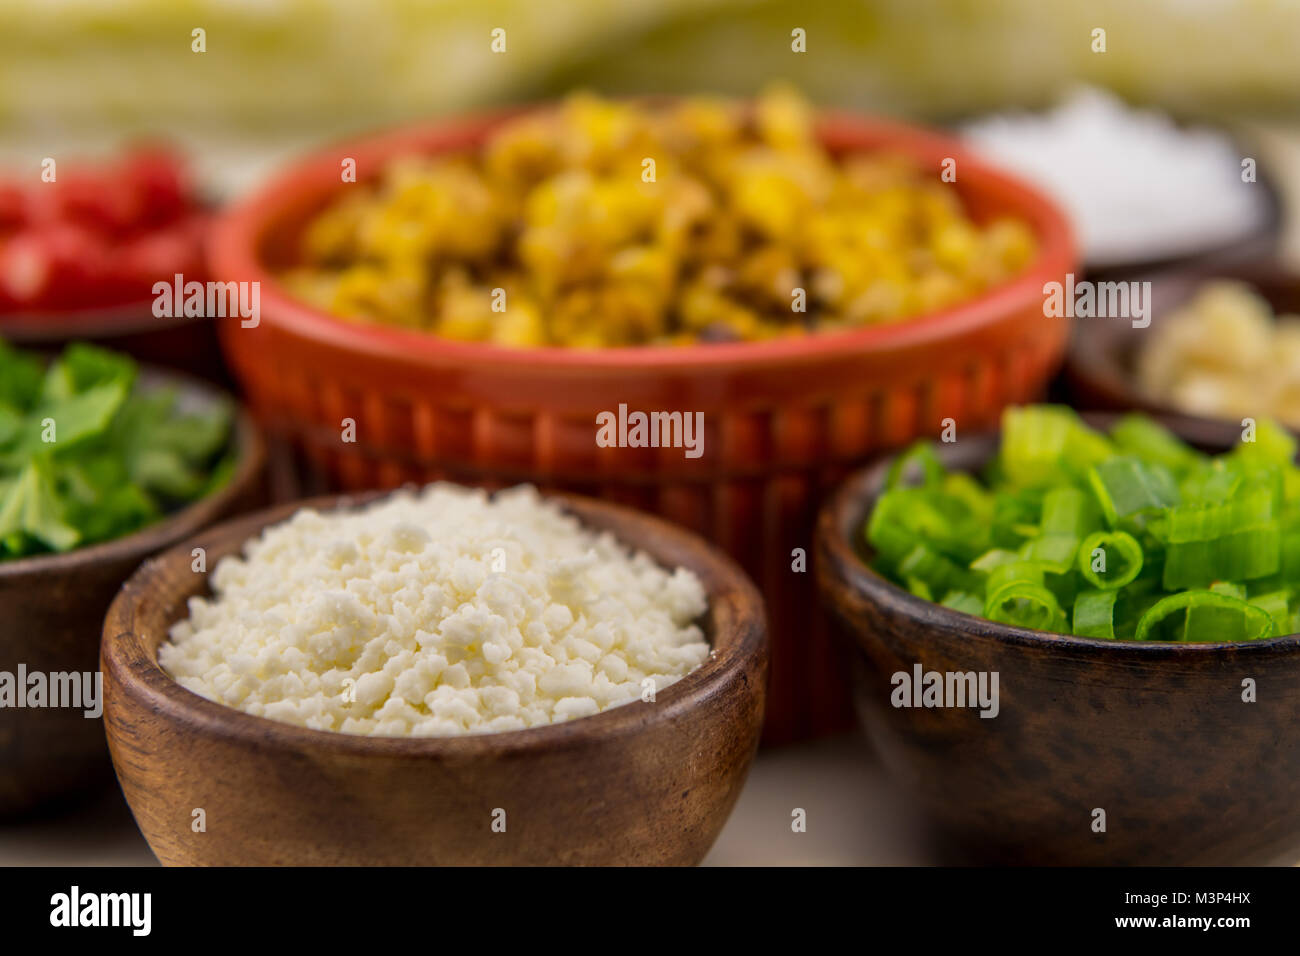 Crumbled Cotija Cheese in Wooden Bowl with other Mexican food ingredients - Stock Image